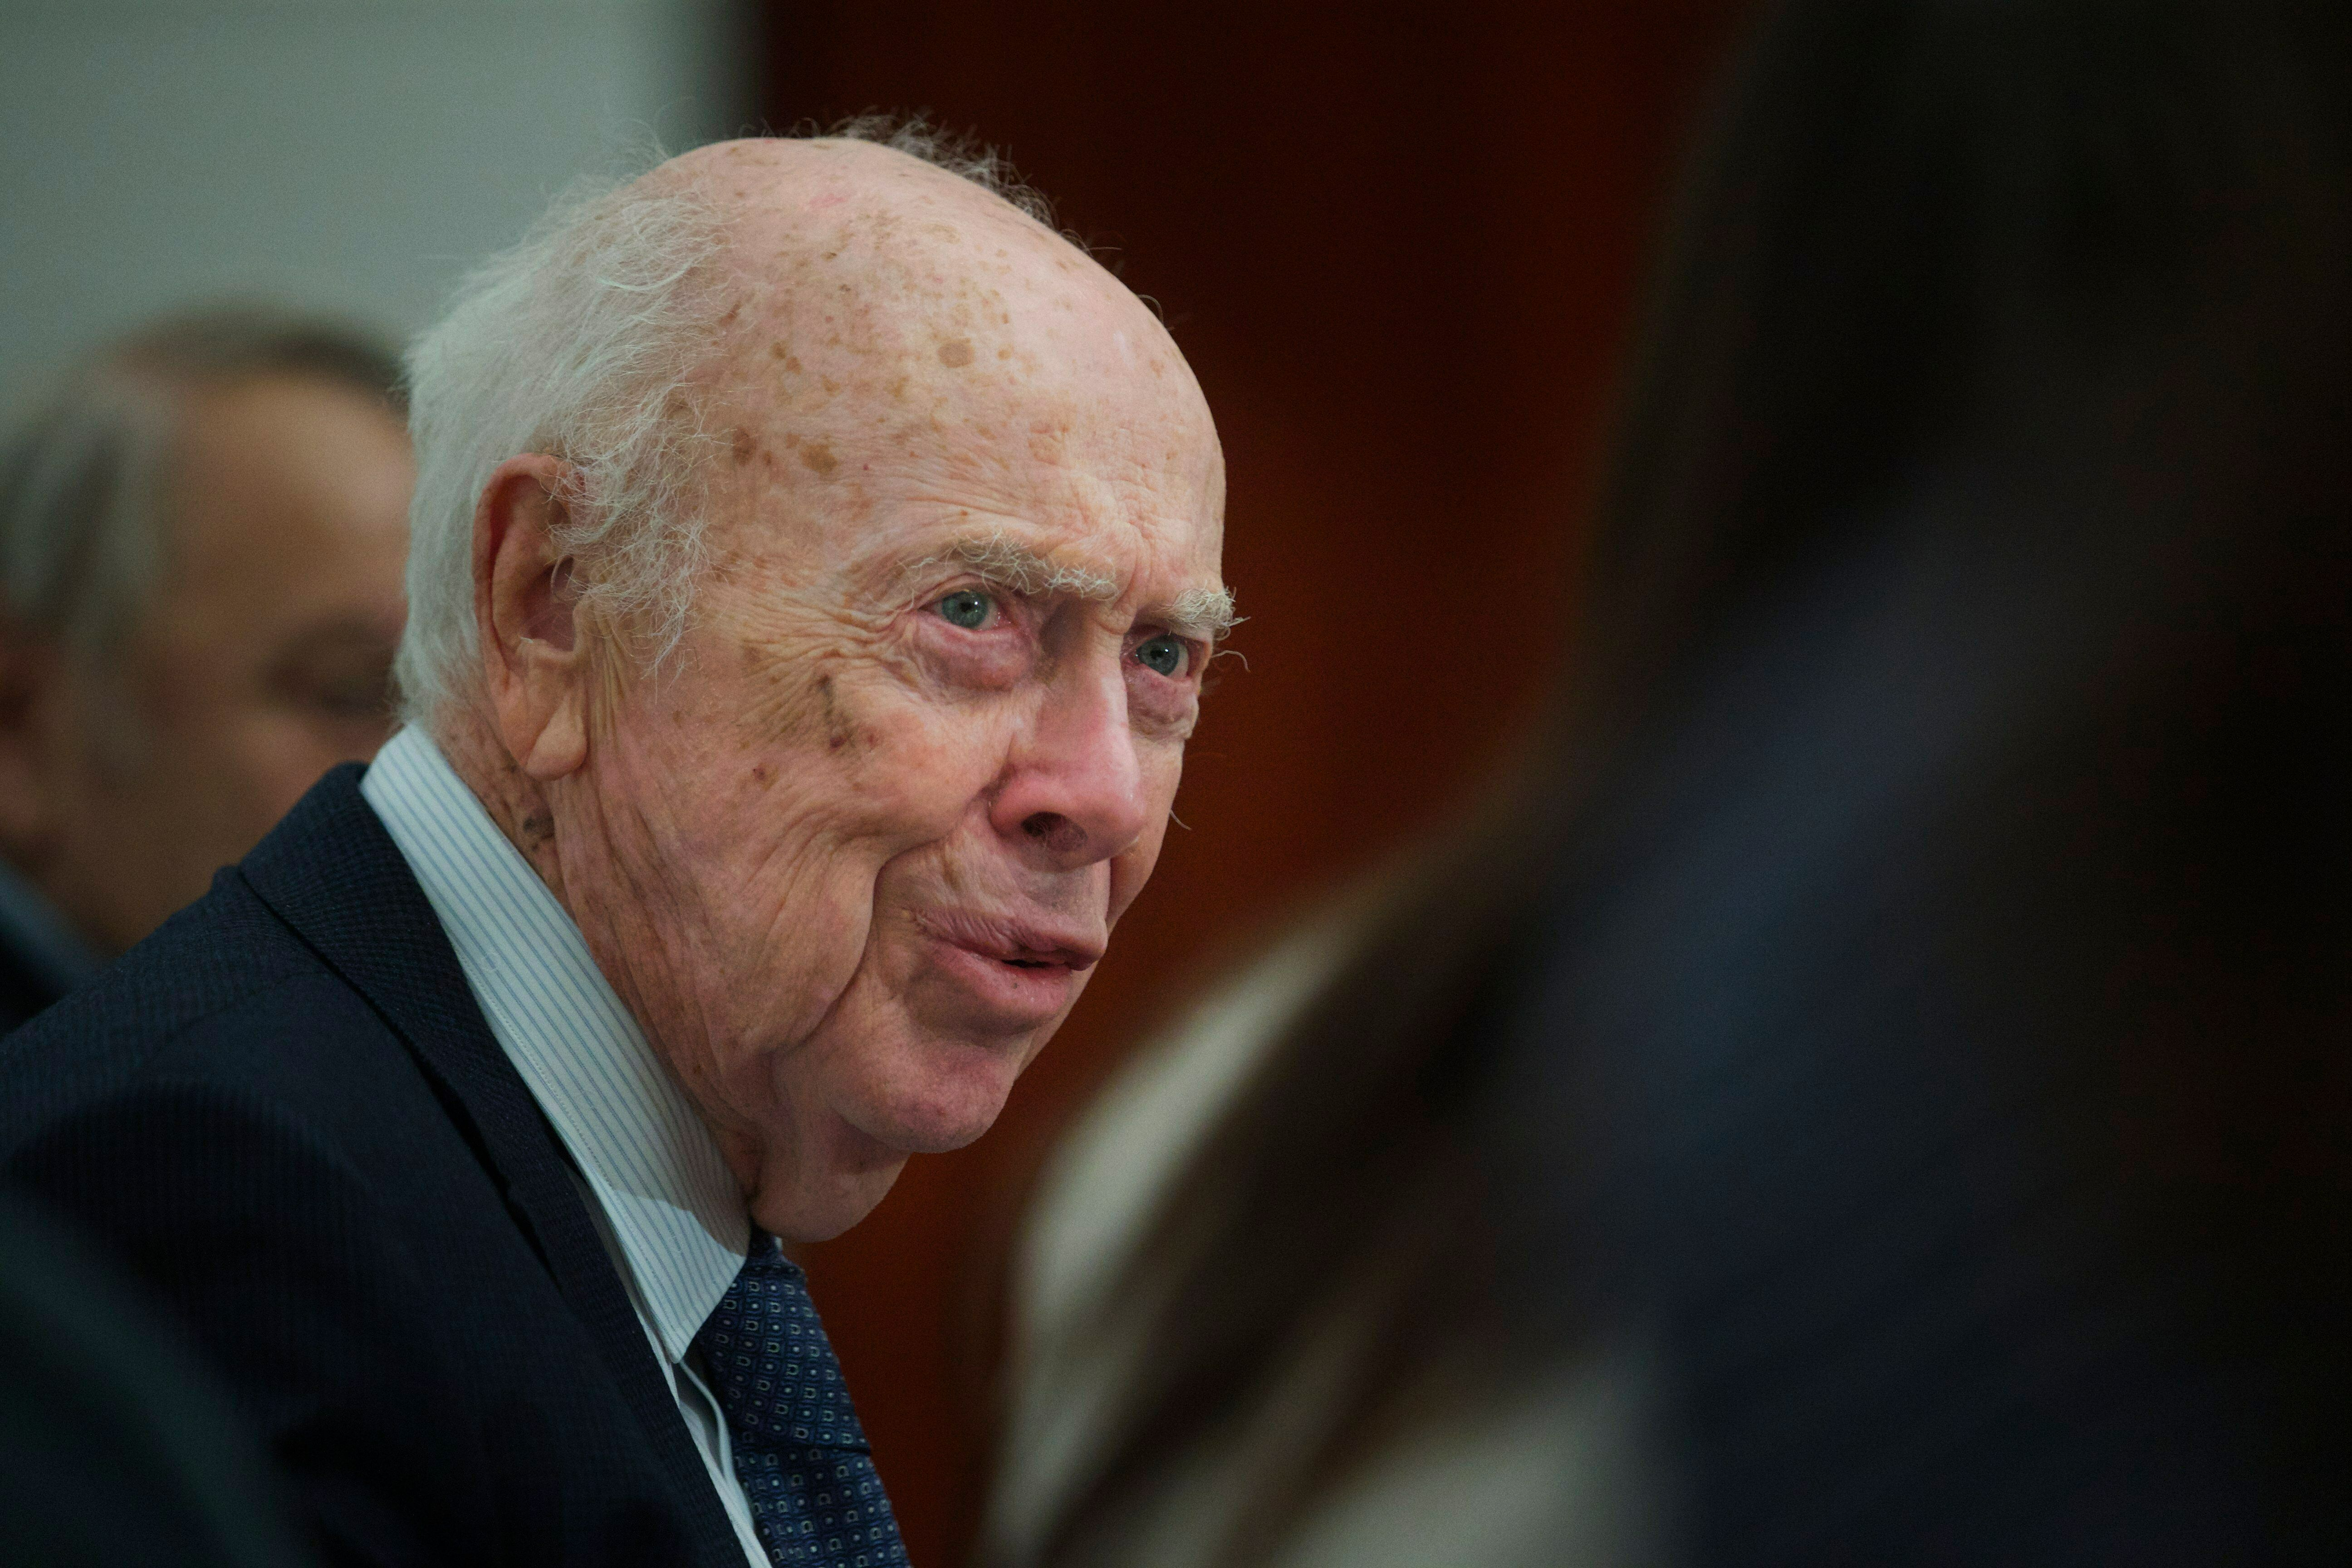 Westlake Legal Group 5c3c2ef12600009e00fae510 Nobel Scientist James Watson Stripped Of Titles For 'Reprehensible' Race Remarks